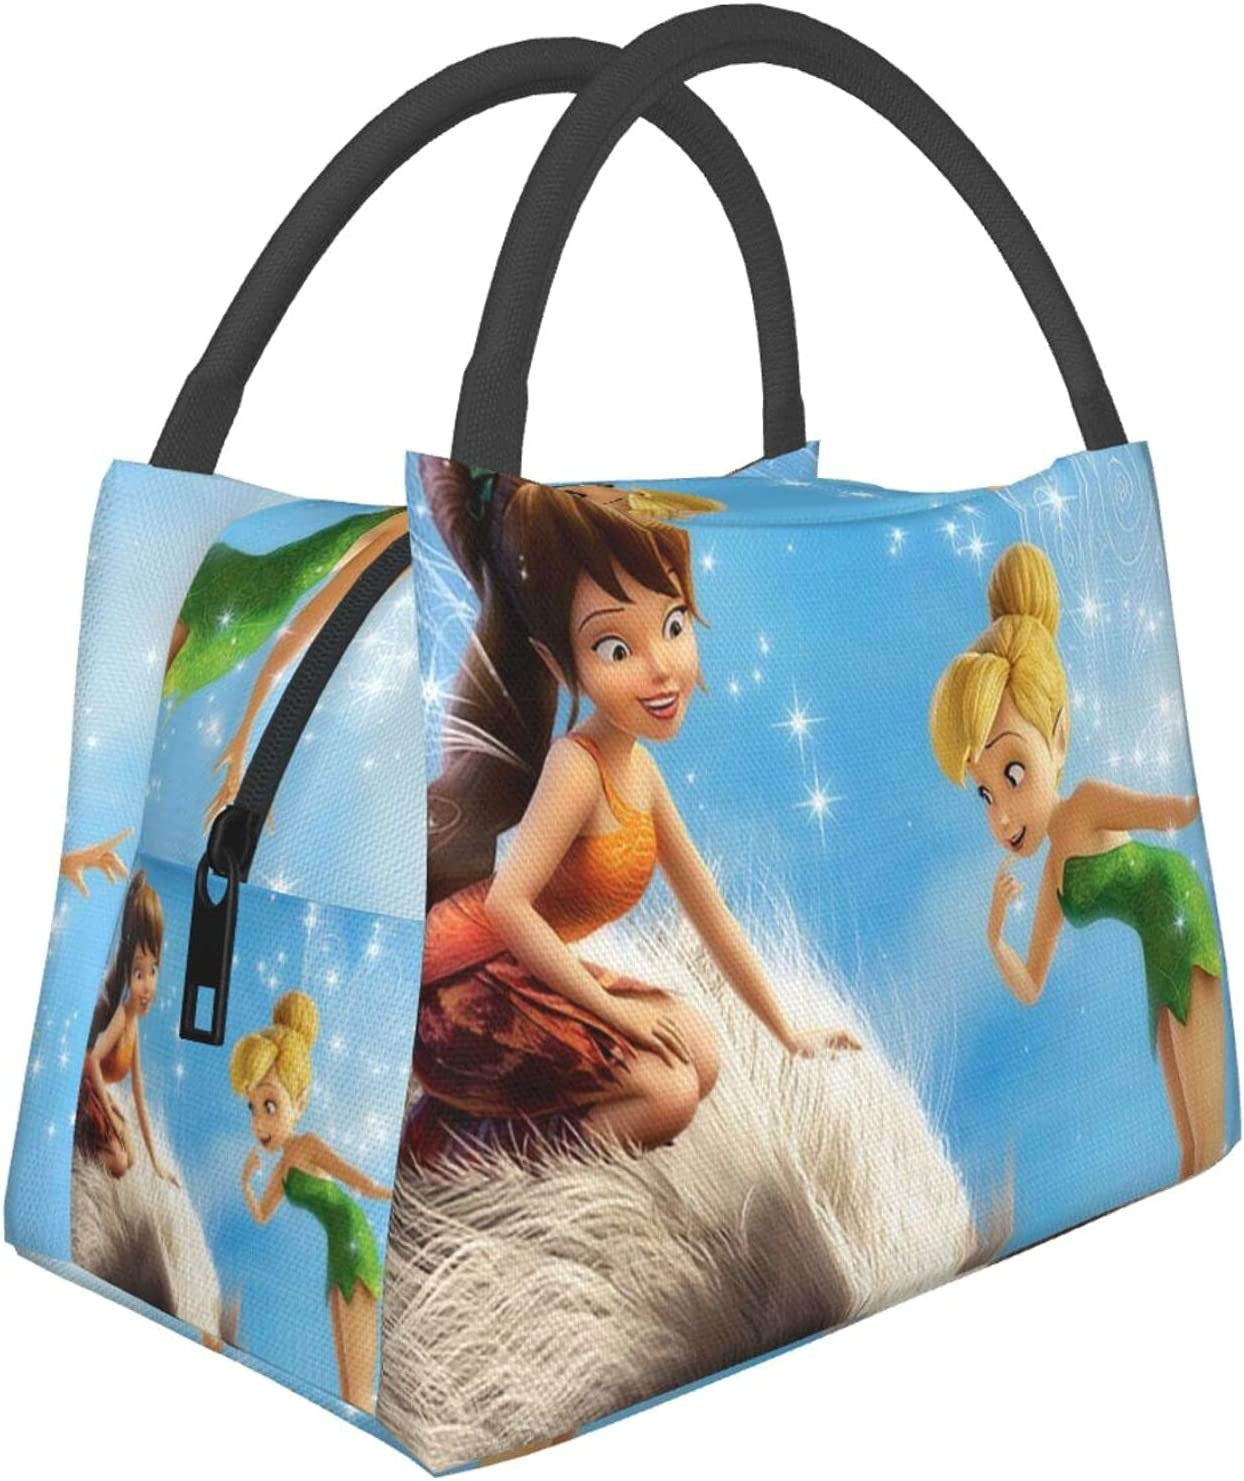 Tinkerbell Reusable Portable Insulated Lunch Box Tote SEAL Sales limited product Cooler Bag